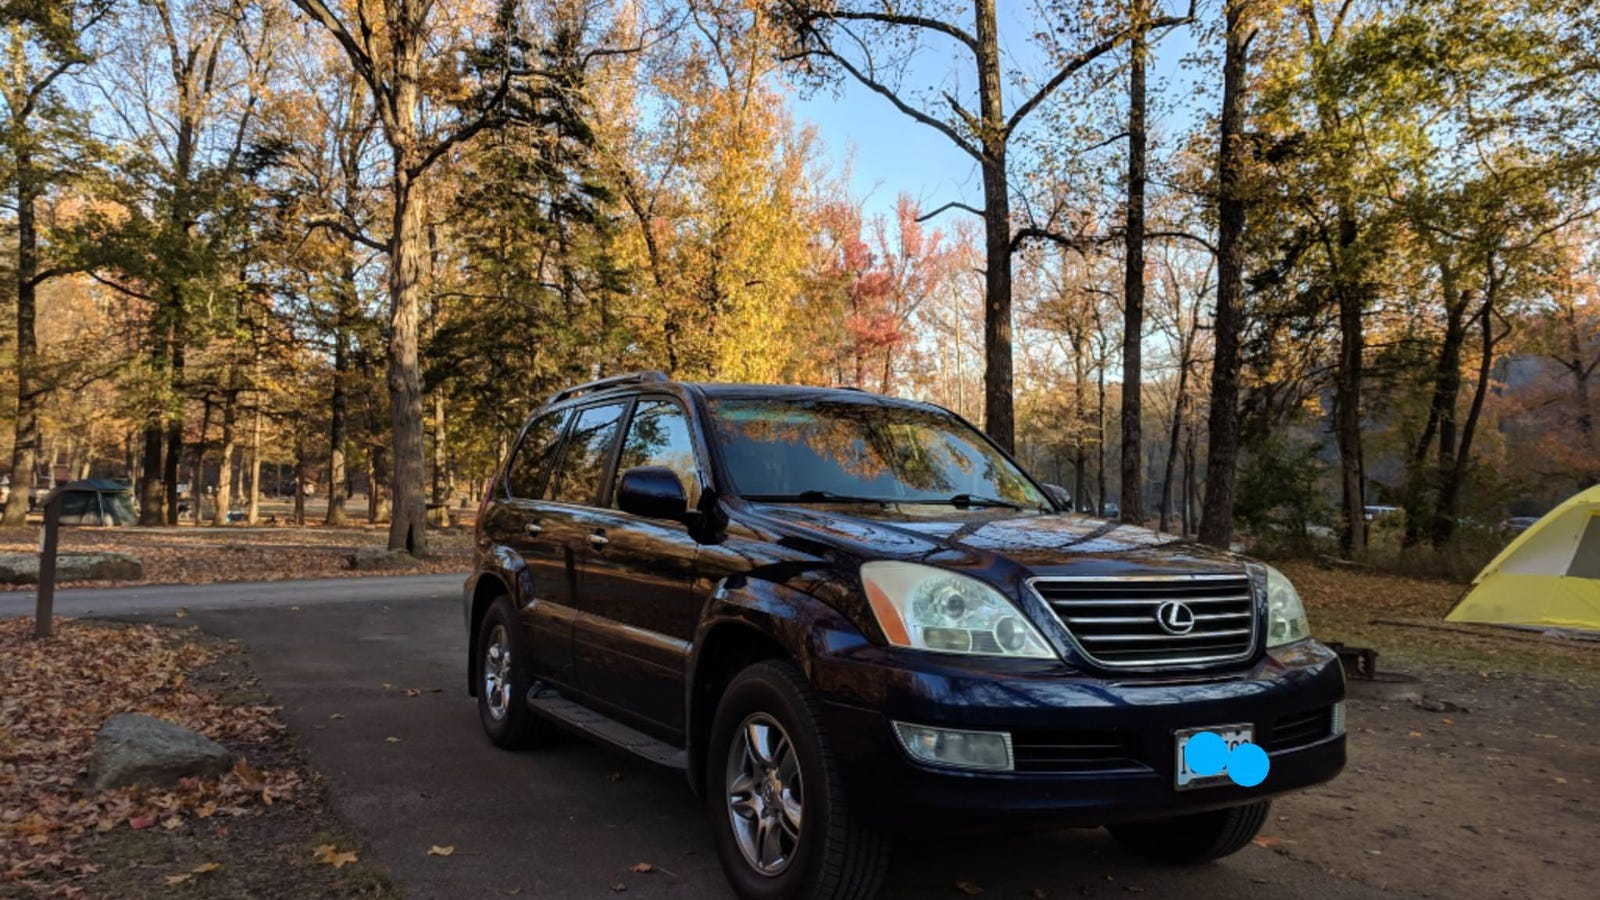 Why I replaced my low mileage Tundra with a high mileage Lexus